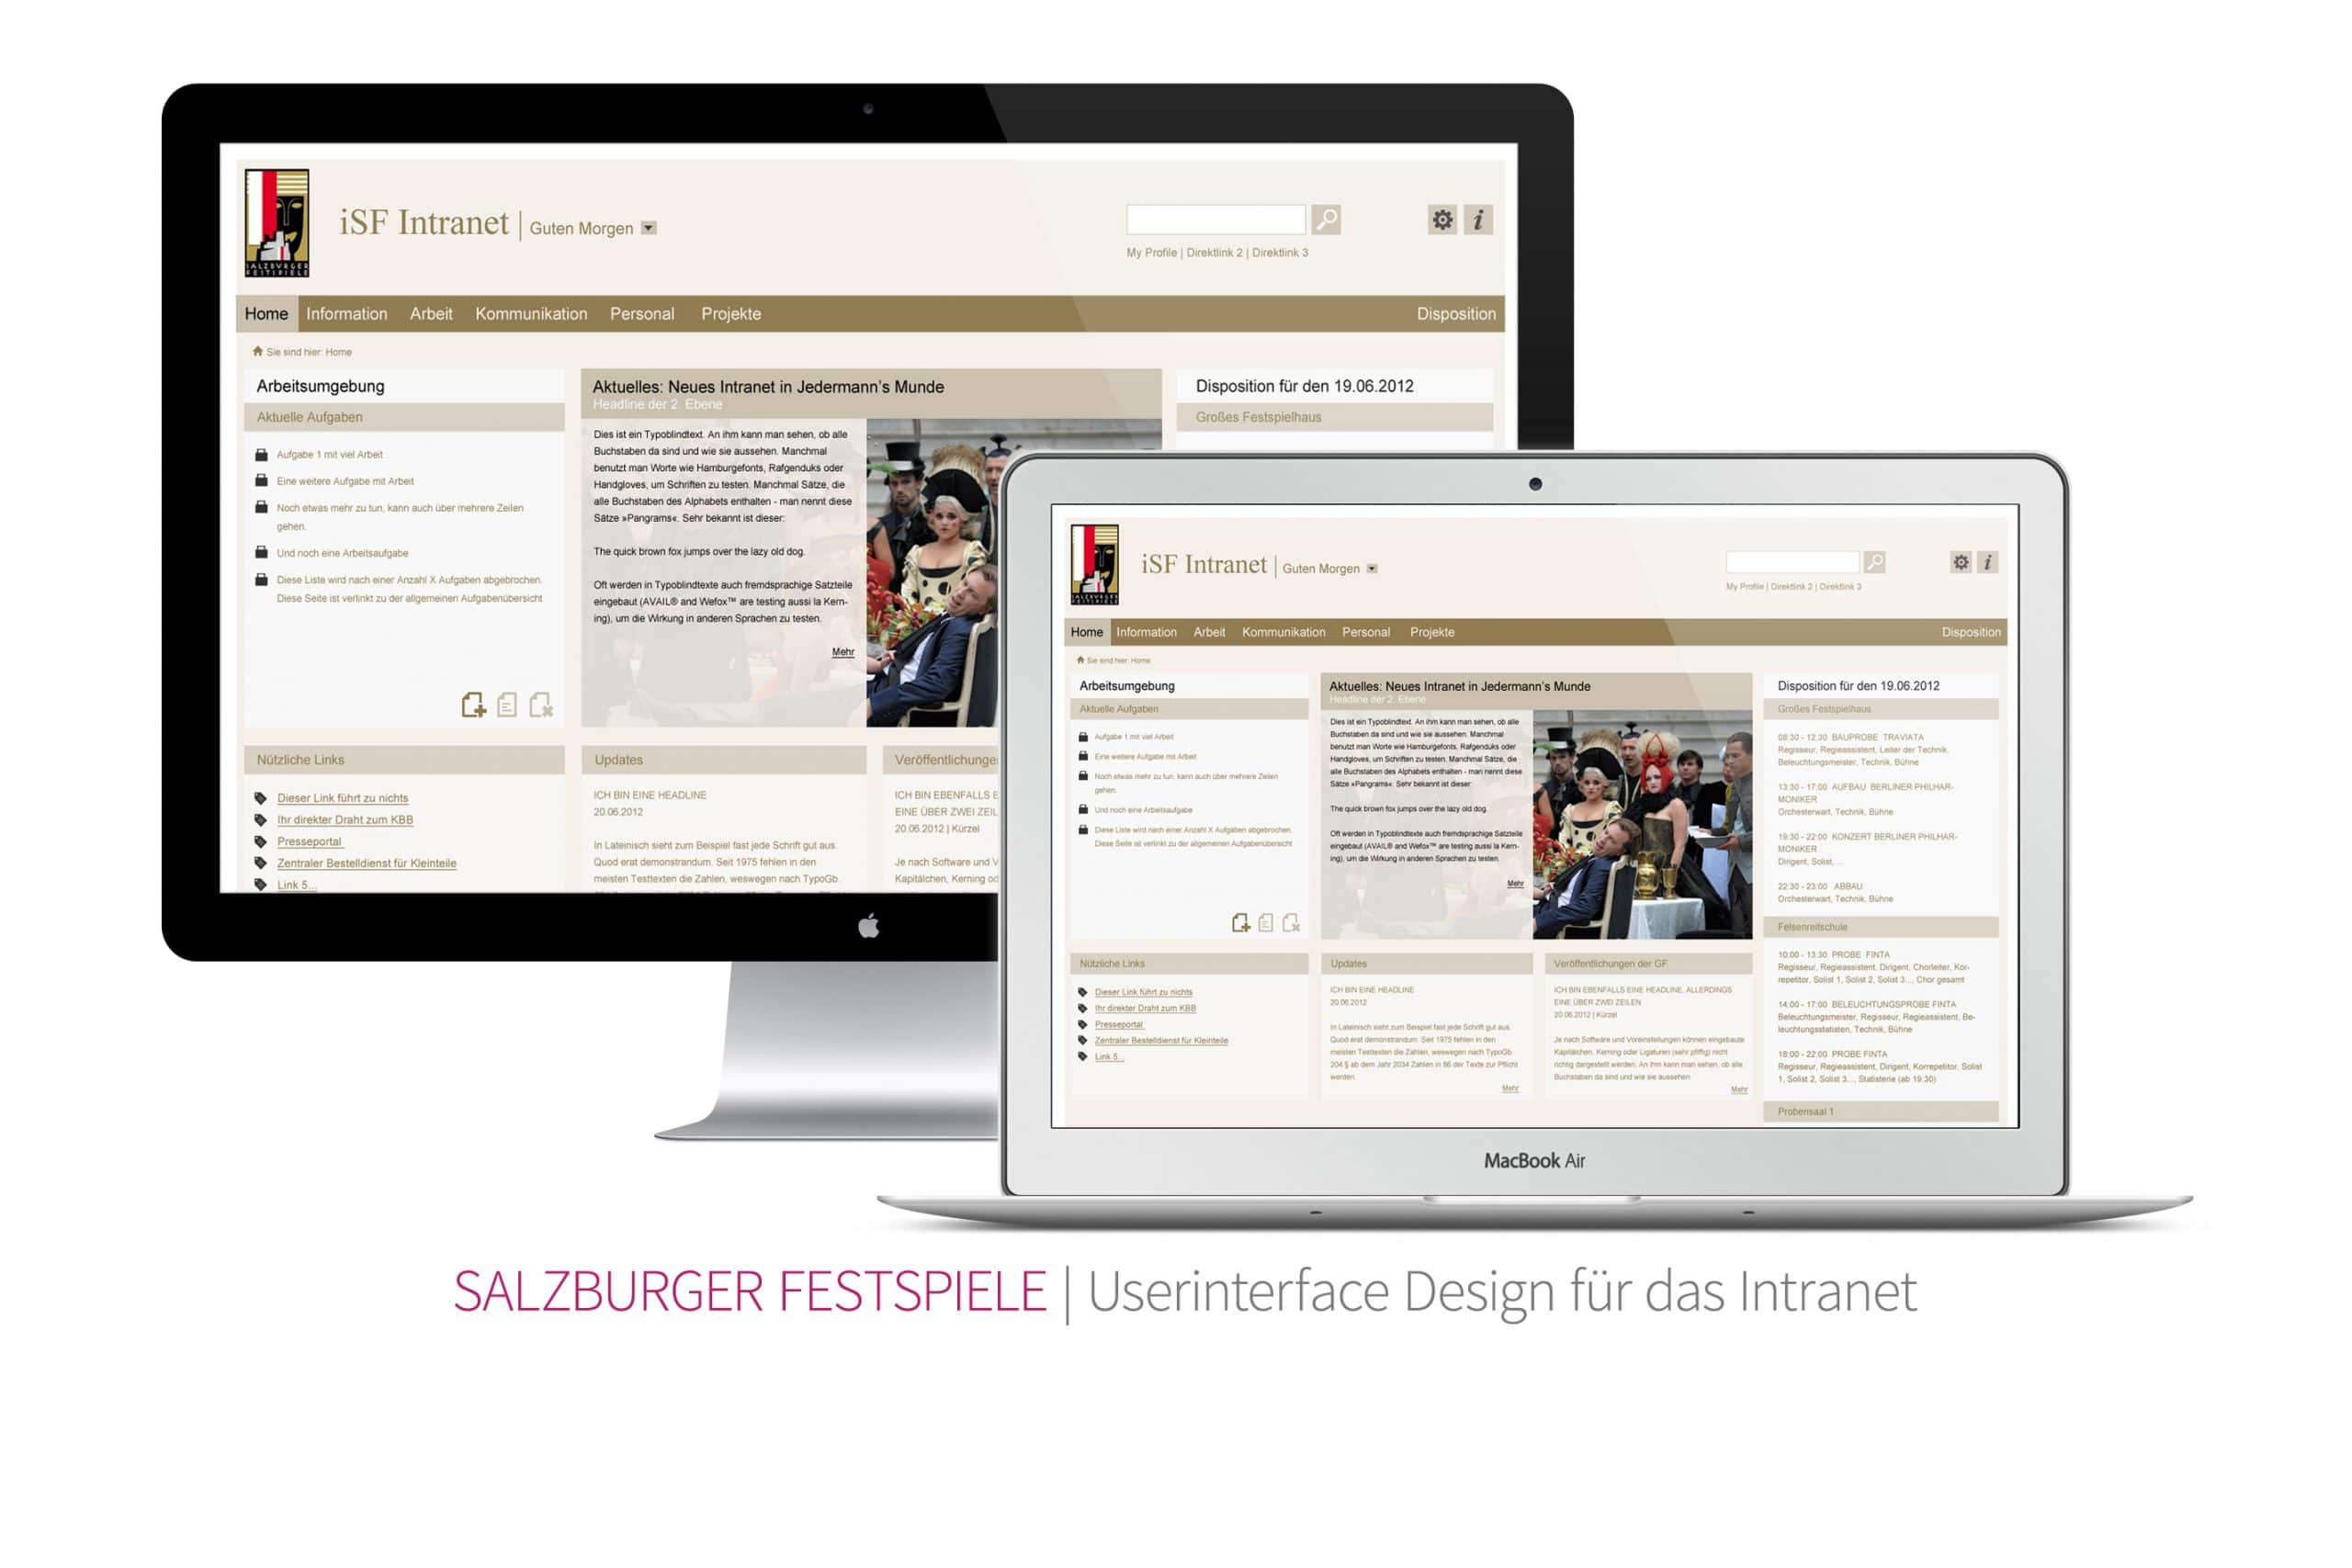 UI_SF_intranet5